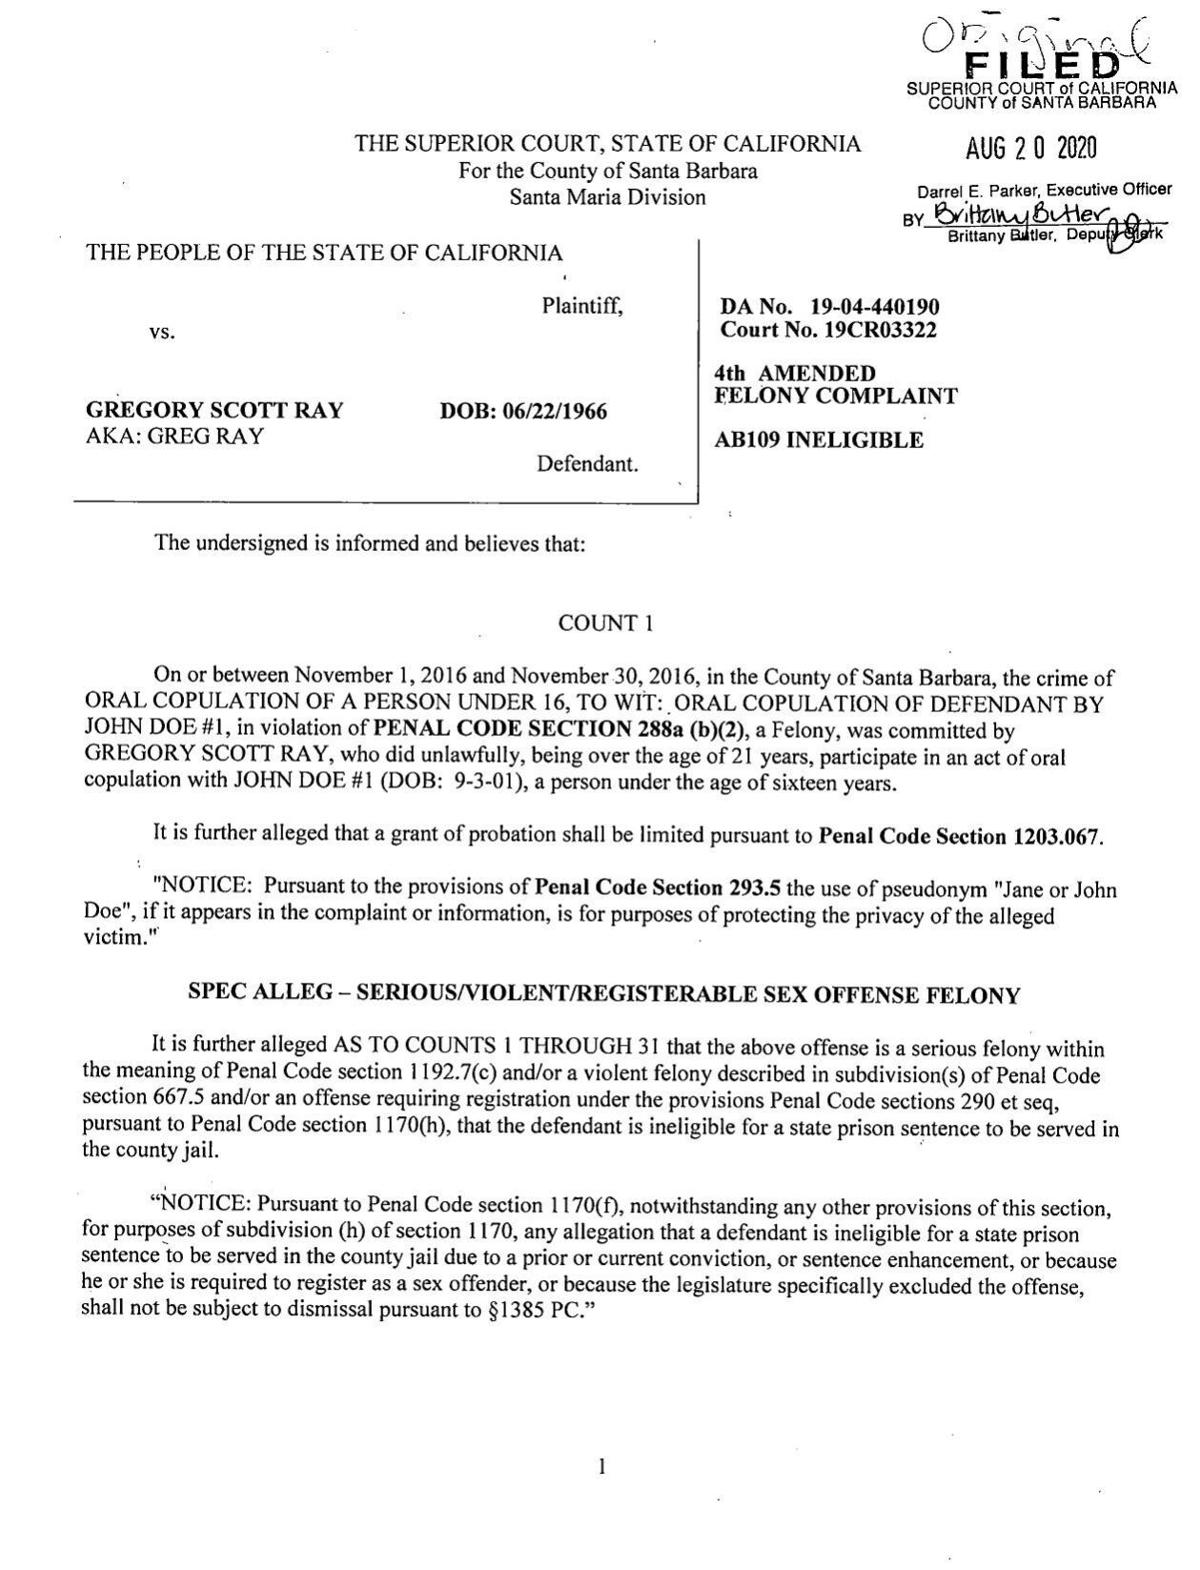 Ray 4th amended complaint